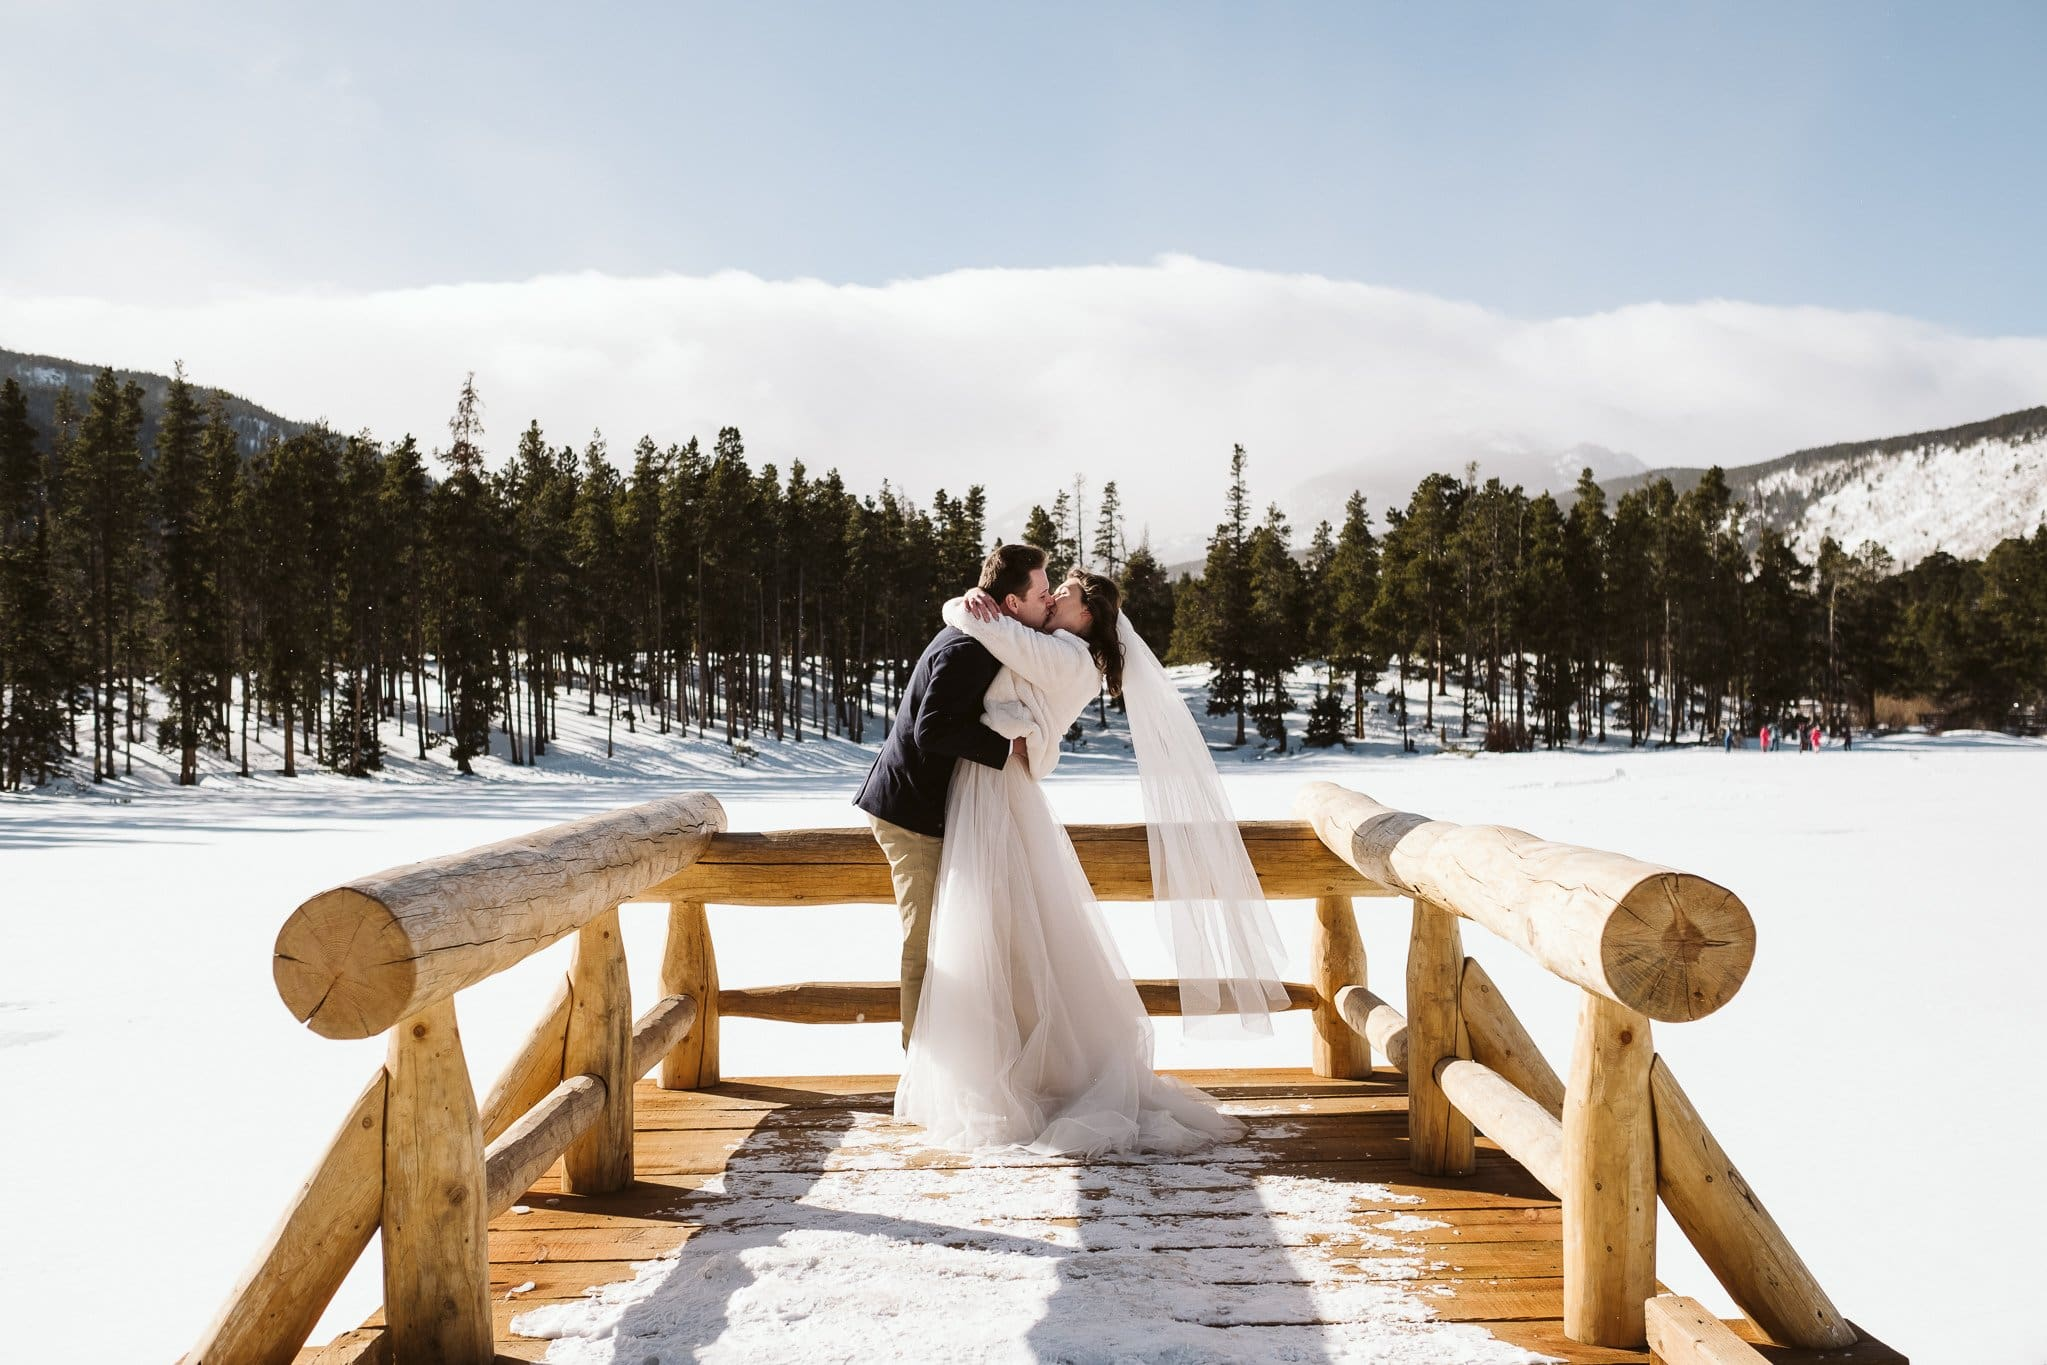 Sprague Lake elopement in winter in Rocky Mountain National Park.